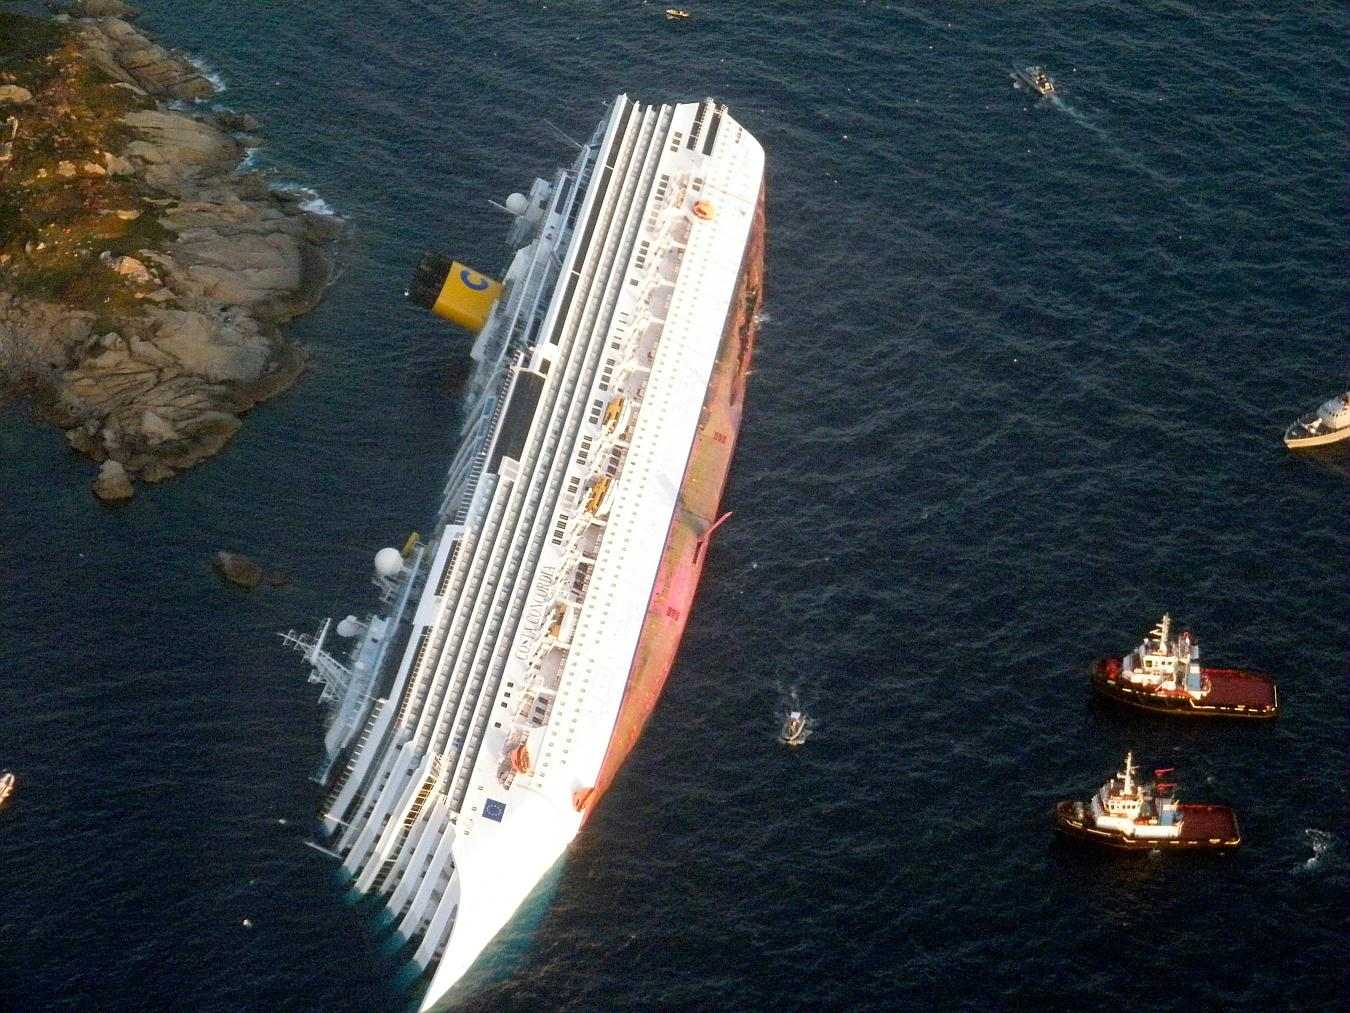 COSTA CONCORDIA_Grounding_Article_Fortunes_de_Mer-21022012 (4)